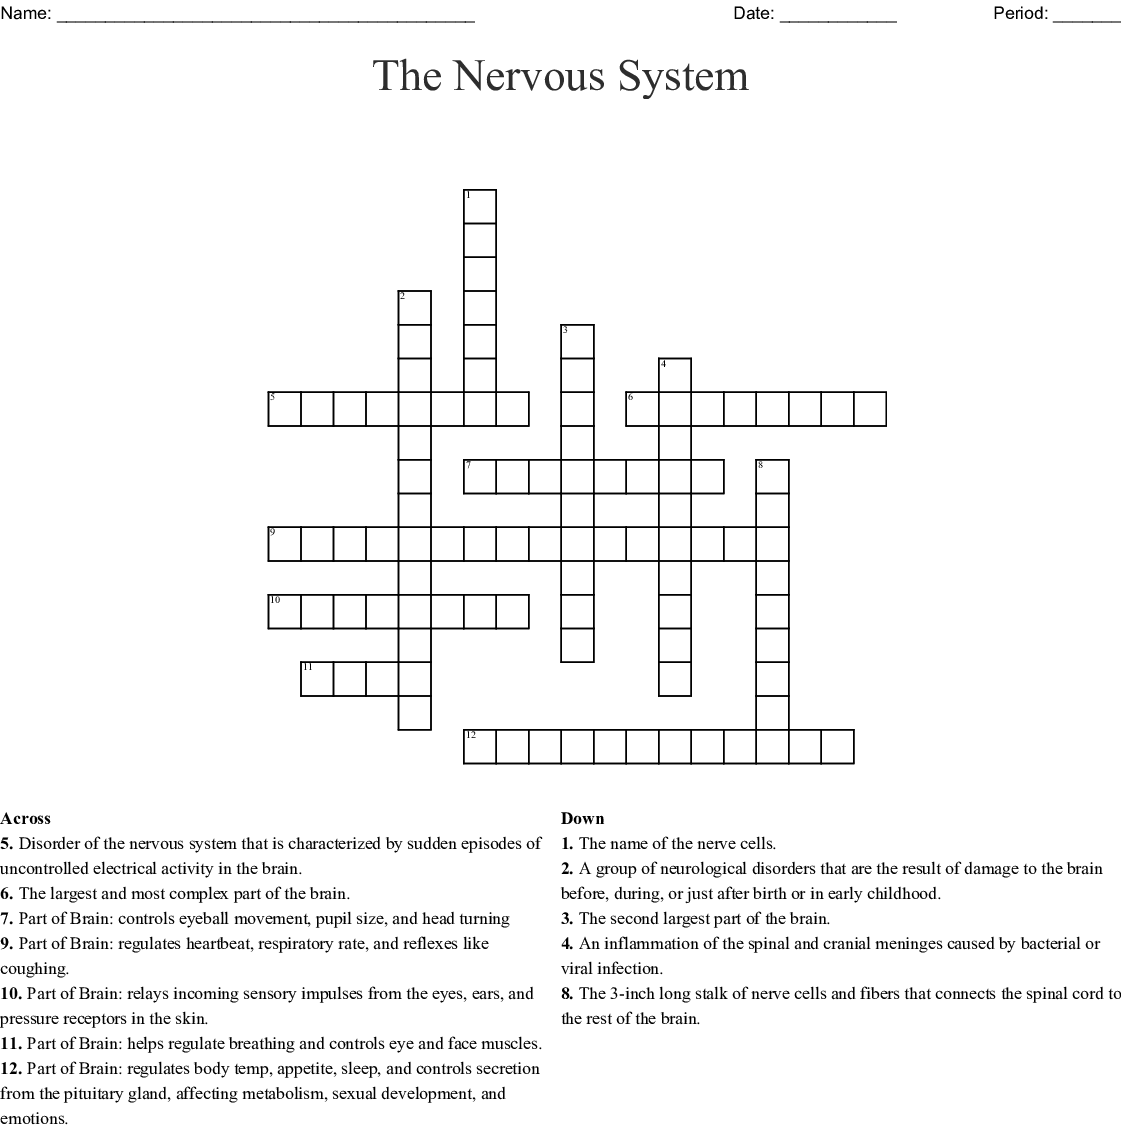 Worksheet On Endocrine And Nervous System Crossword